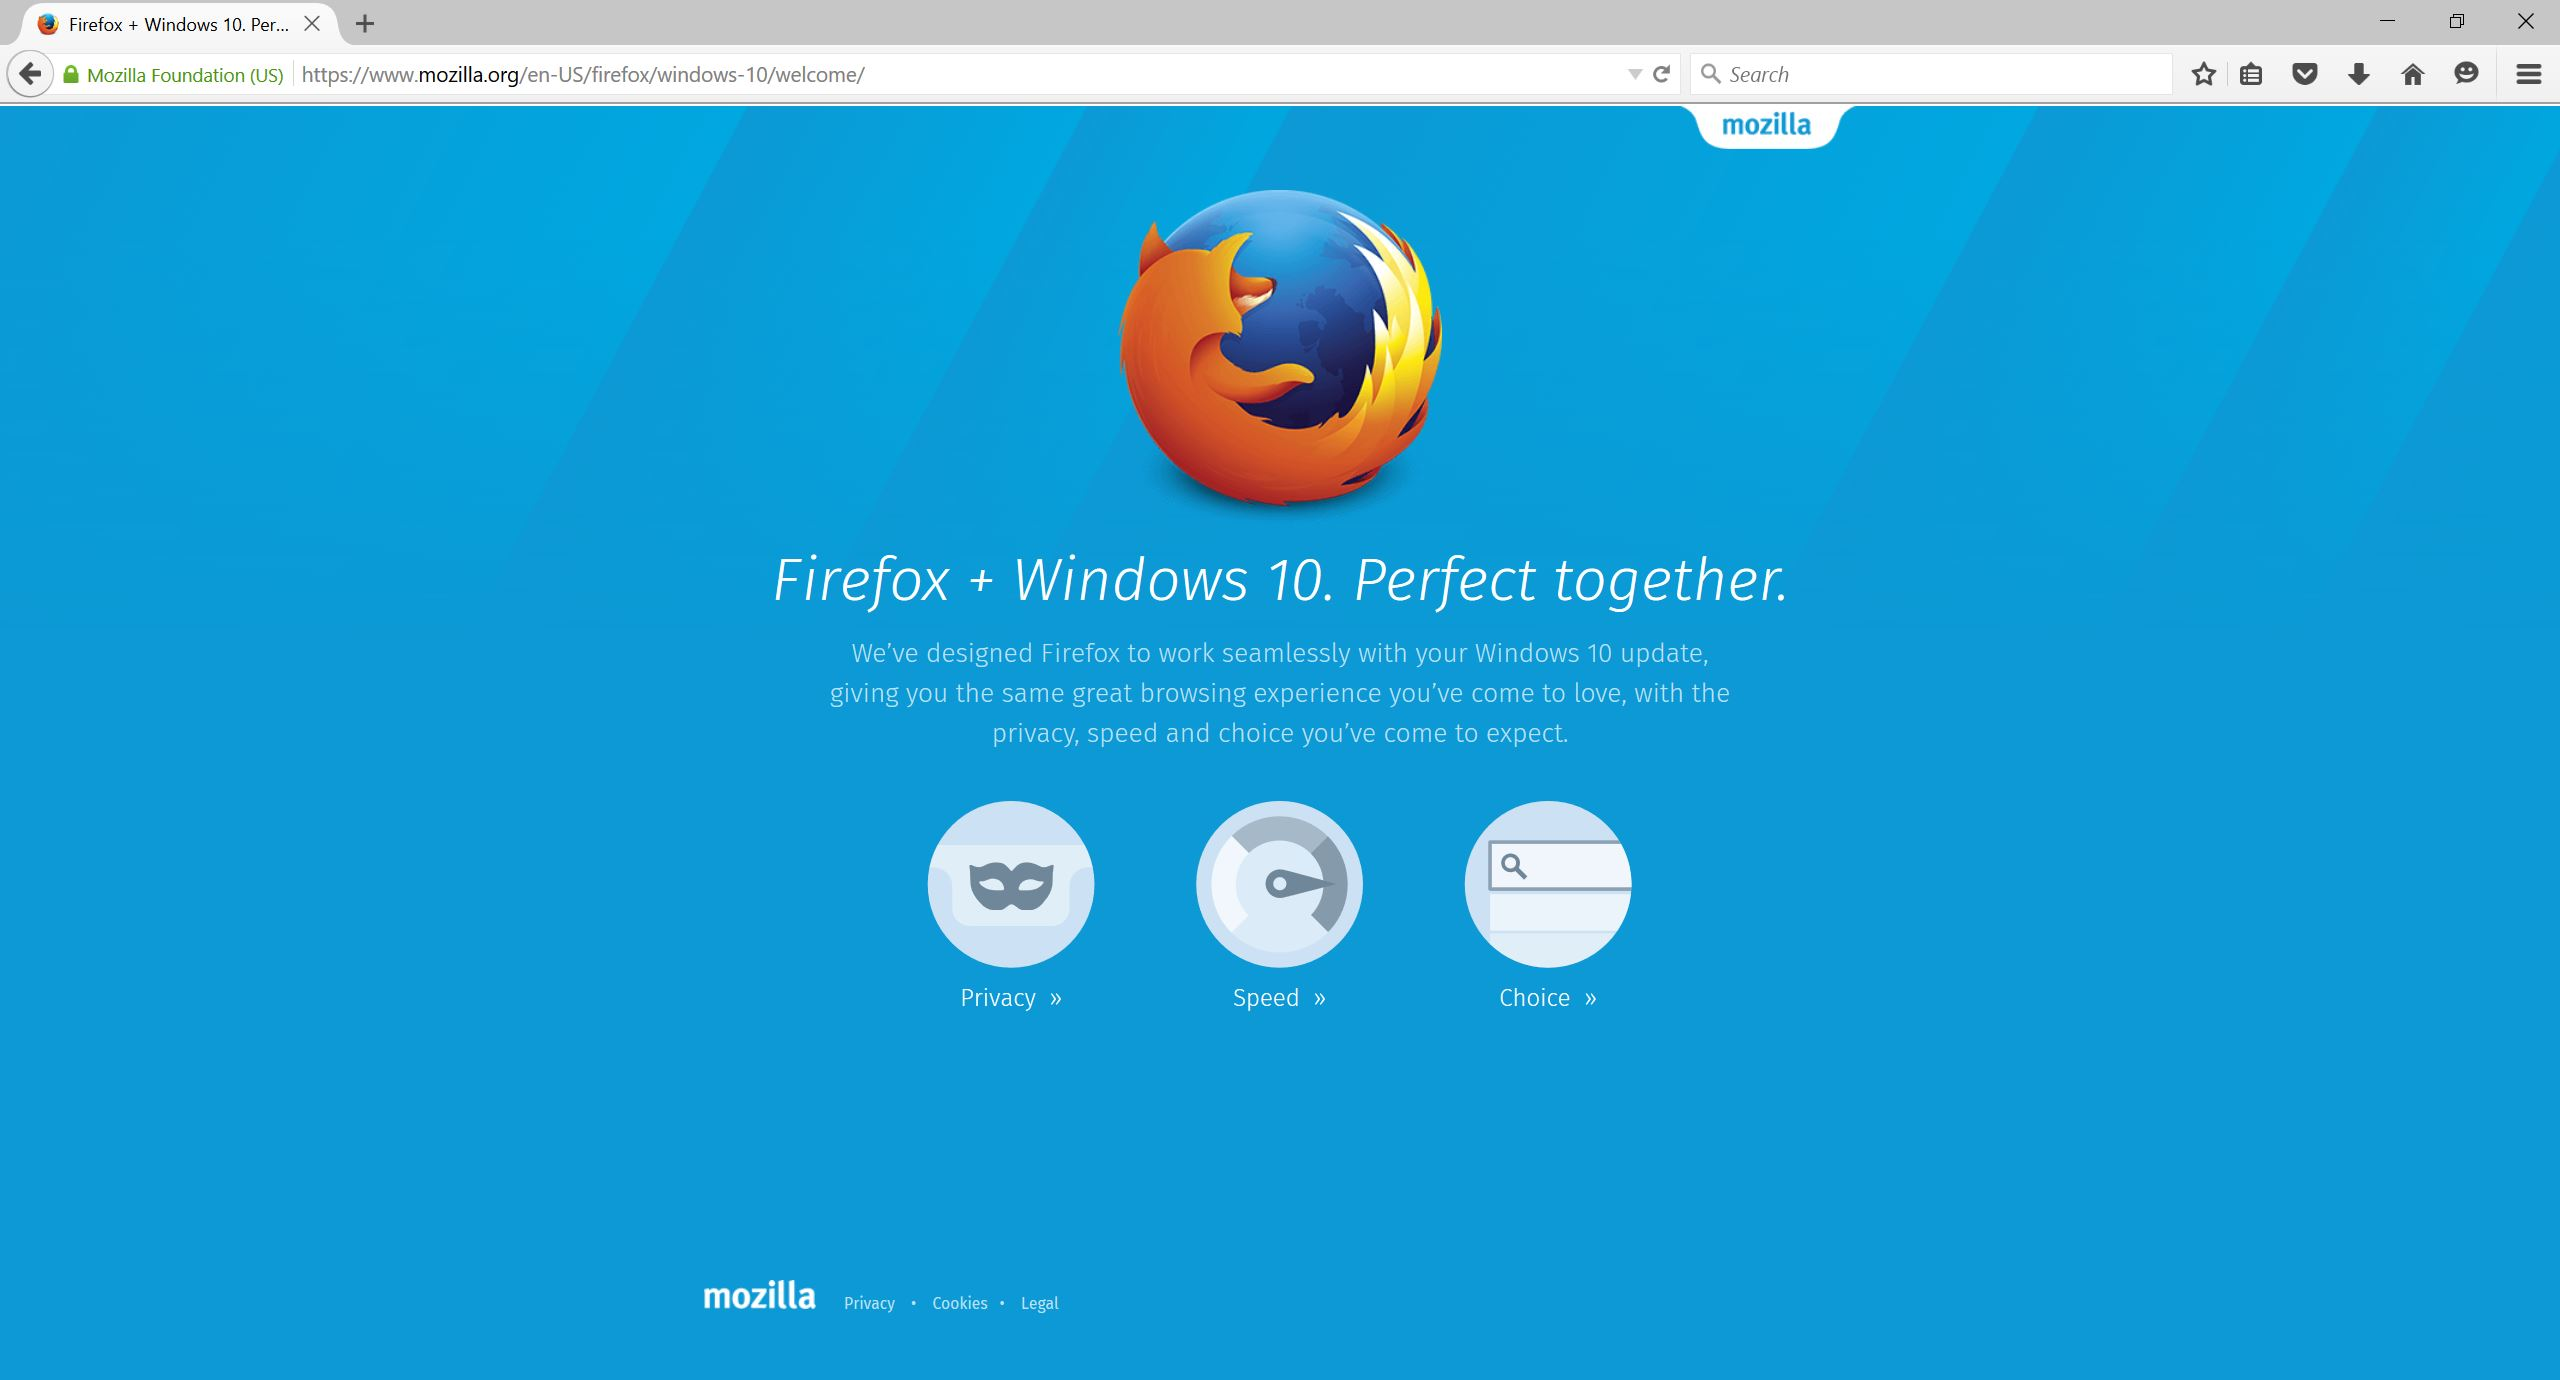 Firefox Brings Fresh new Look to Windows 10 and Makes Add-ons Safer - The  Mozilla Blog